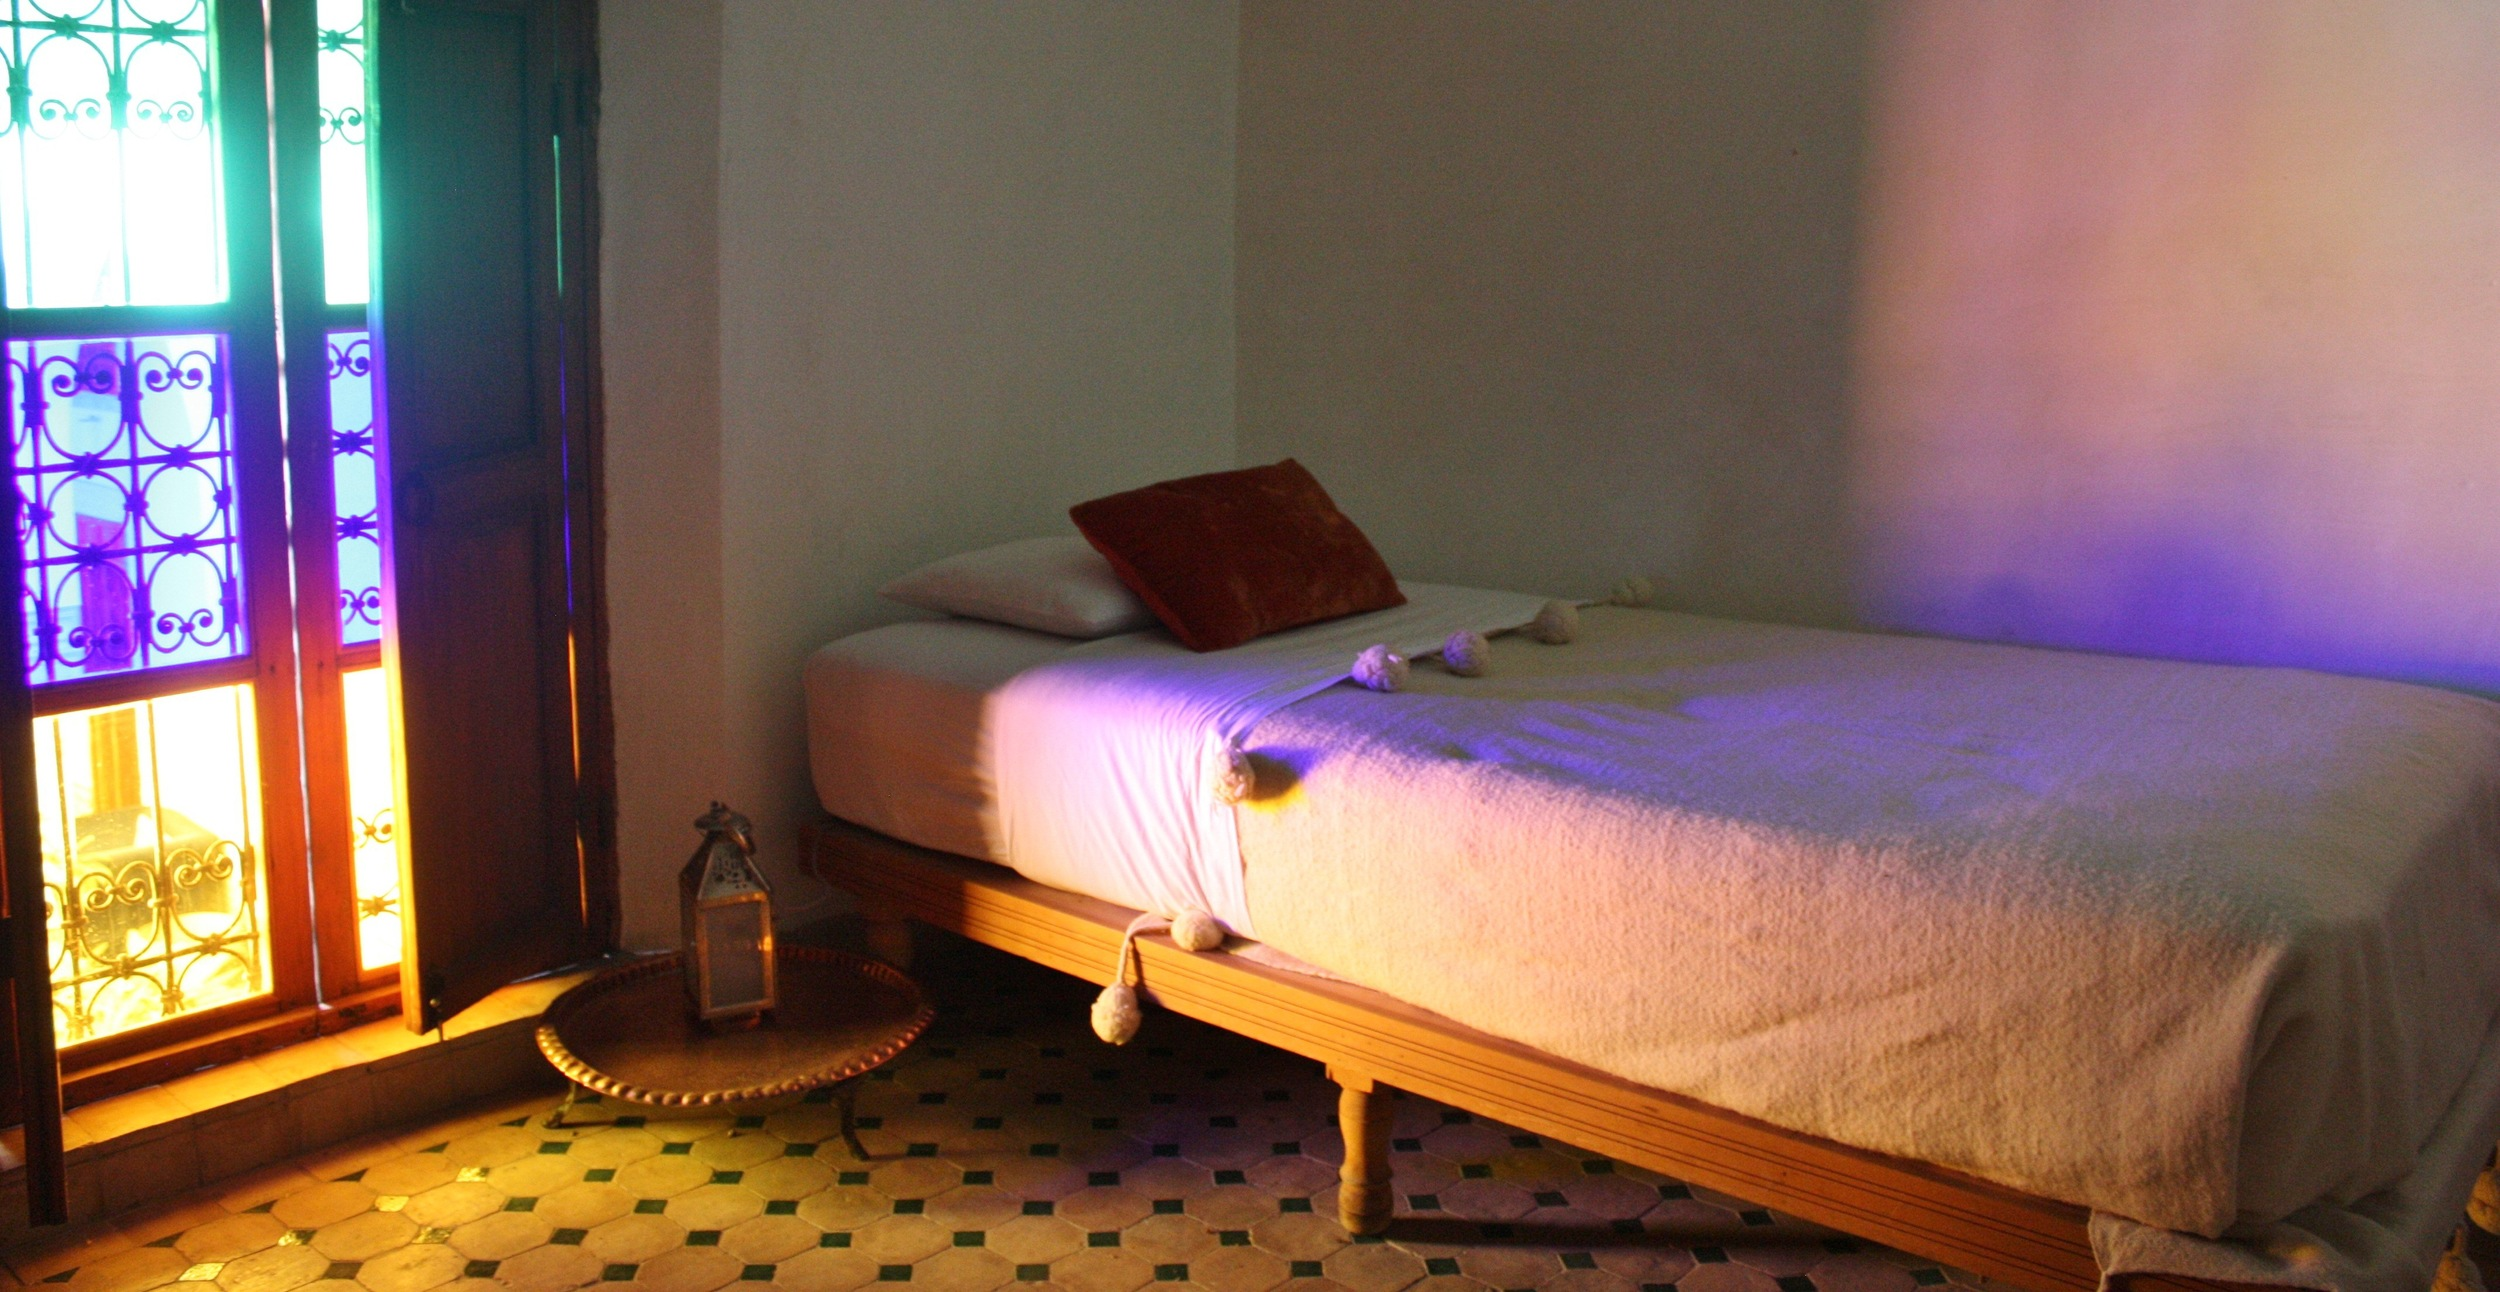 A simple bedroom in a riad in the old city of Fez displays the stunning colors, textures, and handmade textiles found in traditional Moroccan interiors.